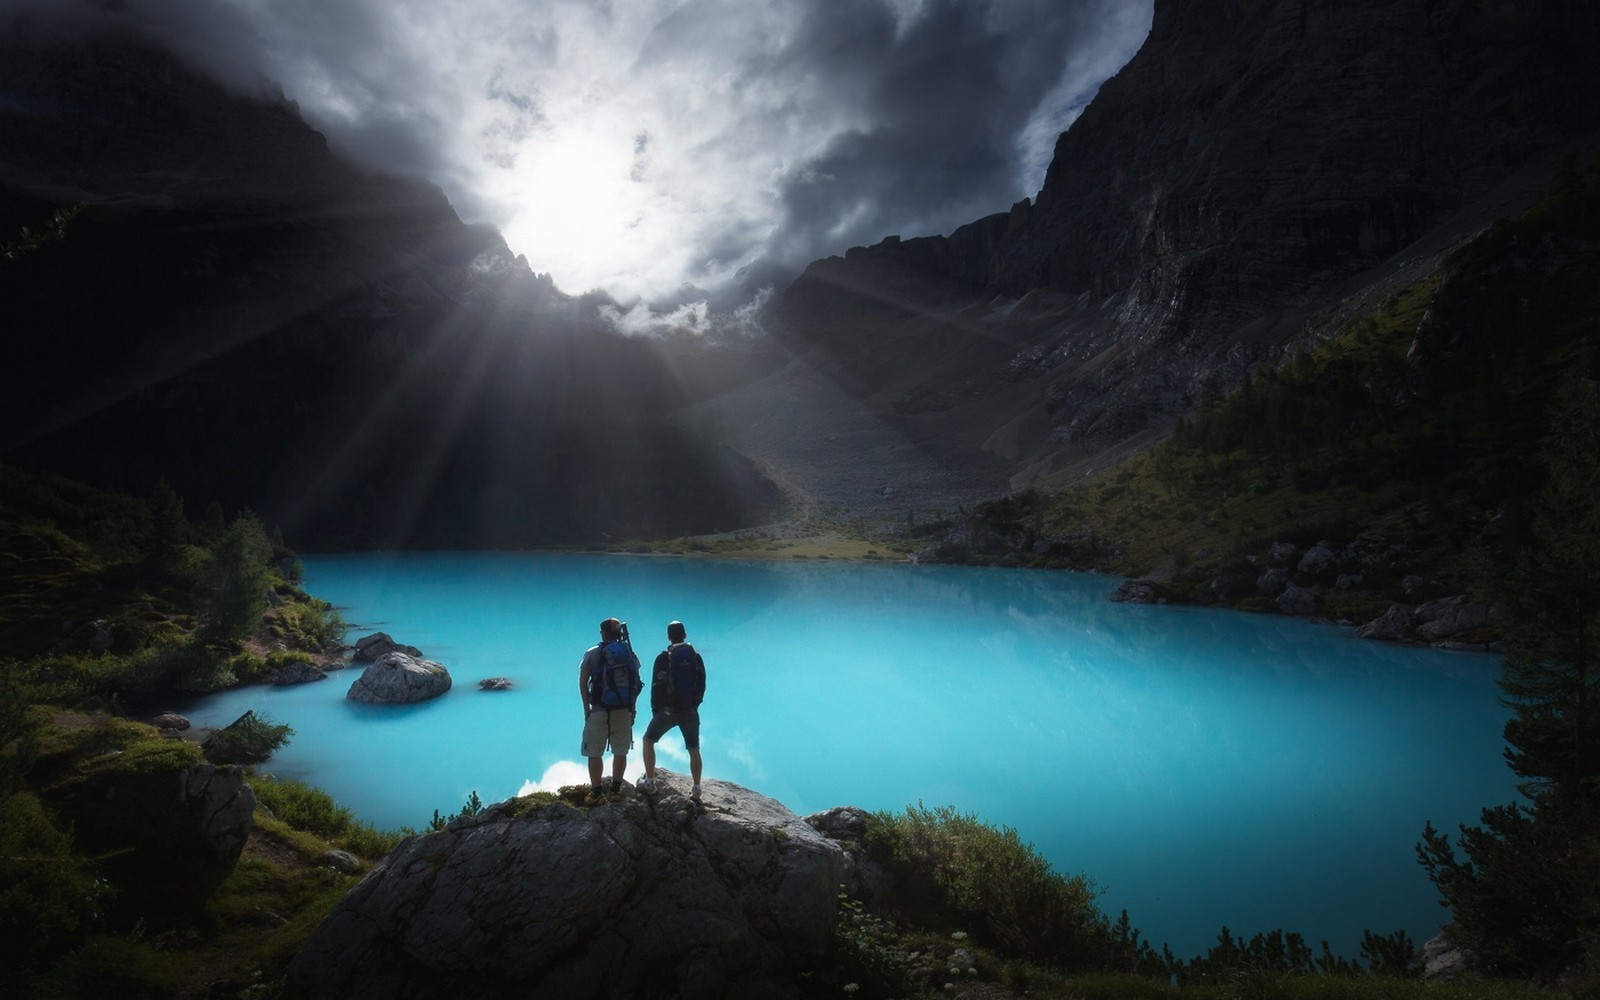 3d Love Couple Wallpaper Download Lake Sunrise Mountain Hiking Italy Alps Nature